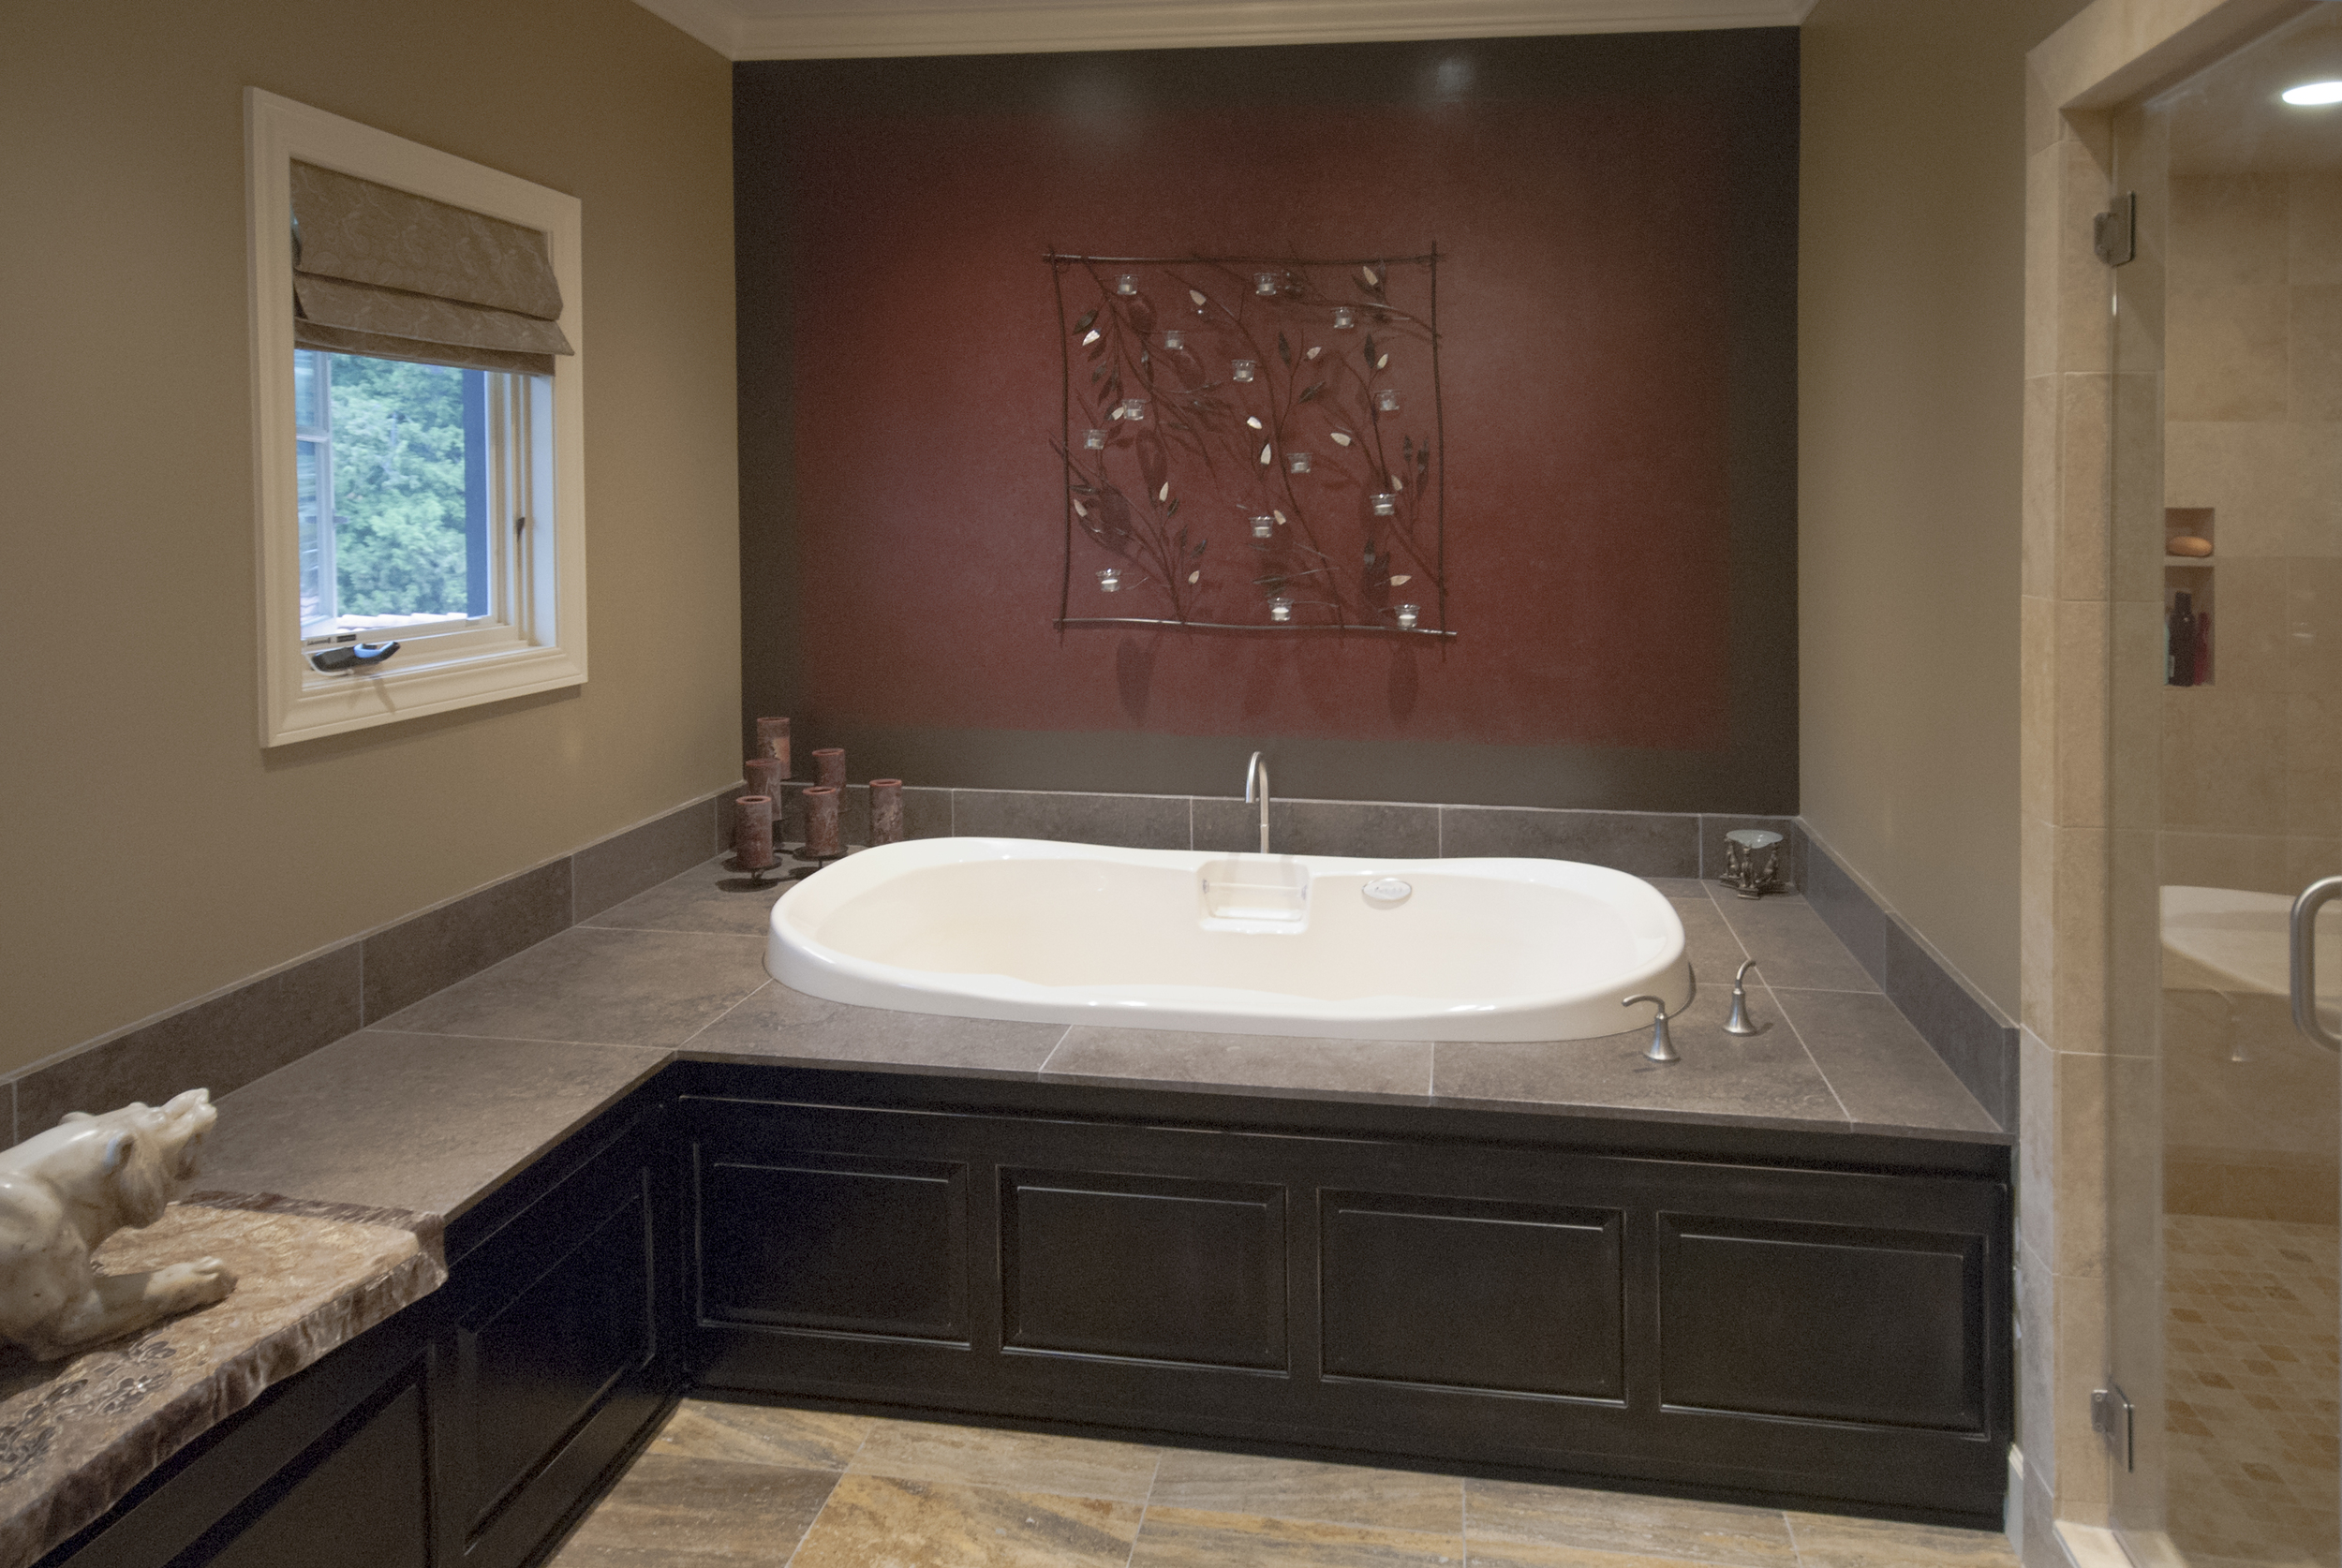 The client is a talented painter and did a lovely job faux finishing the wall behind her champaign bubble tub which includes fiber optic color changing lights.